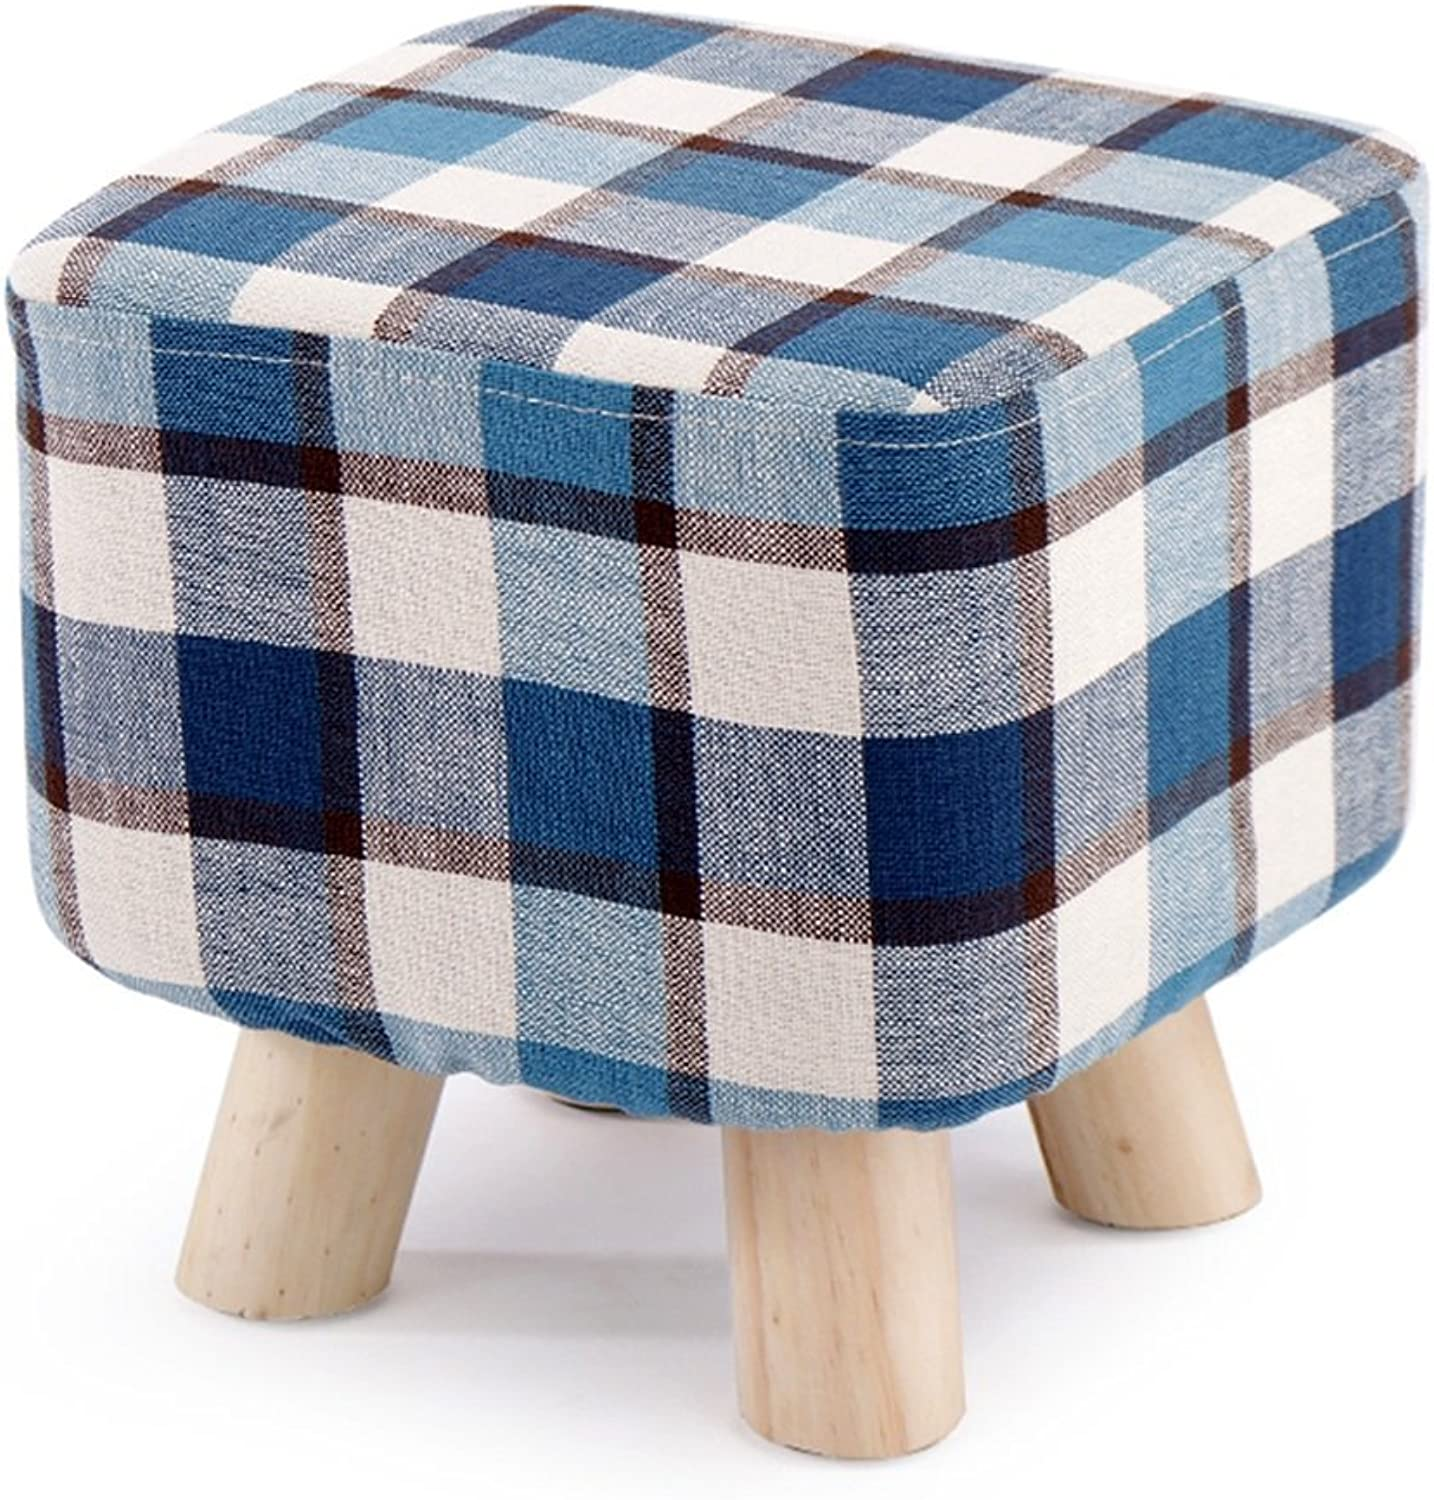 July Stool Solid Wood Home Stool Creative Living Room shoes Stool Fashion Adult Stool Fabric Sofa Stool Bench(2828.5CM) (color   B)